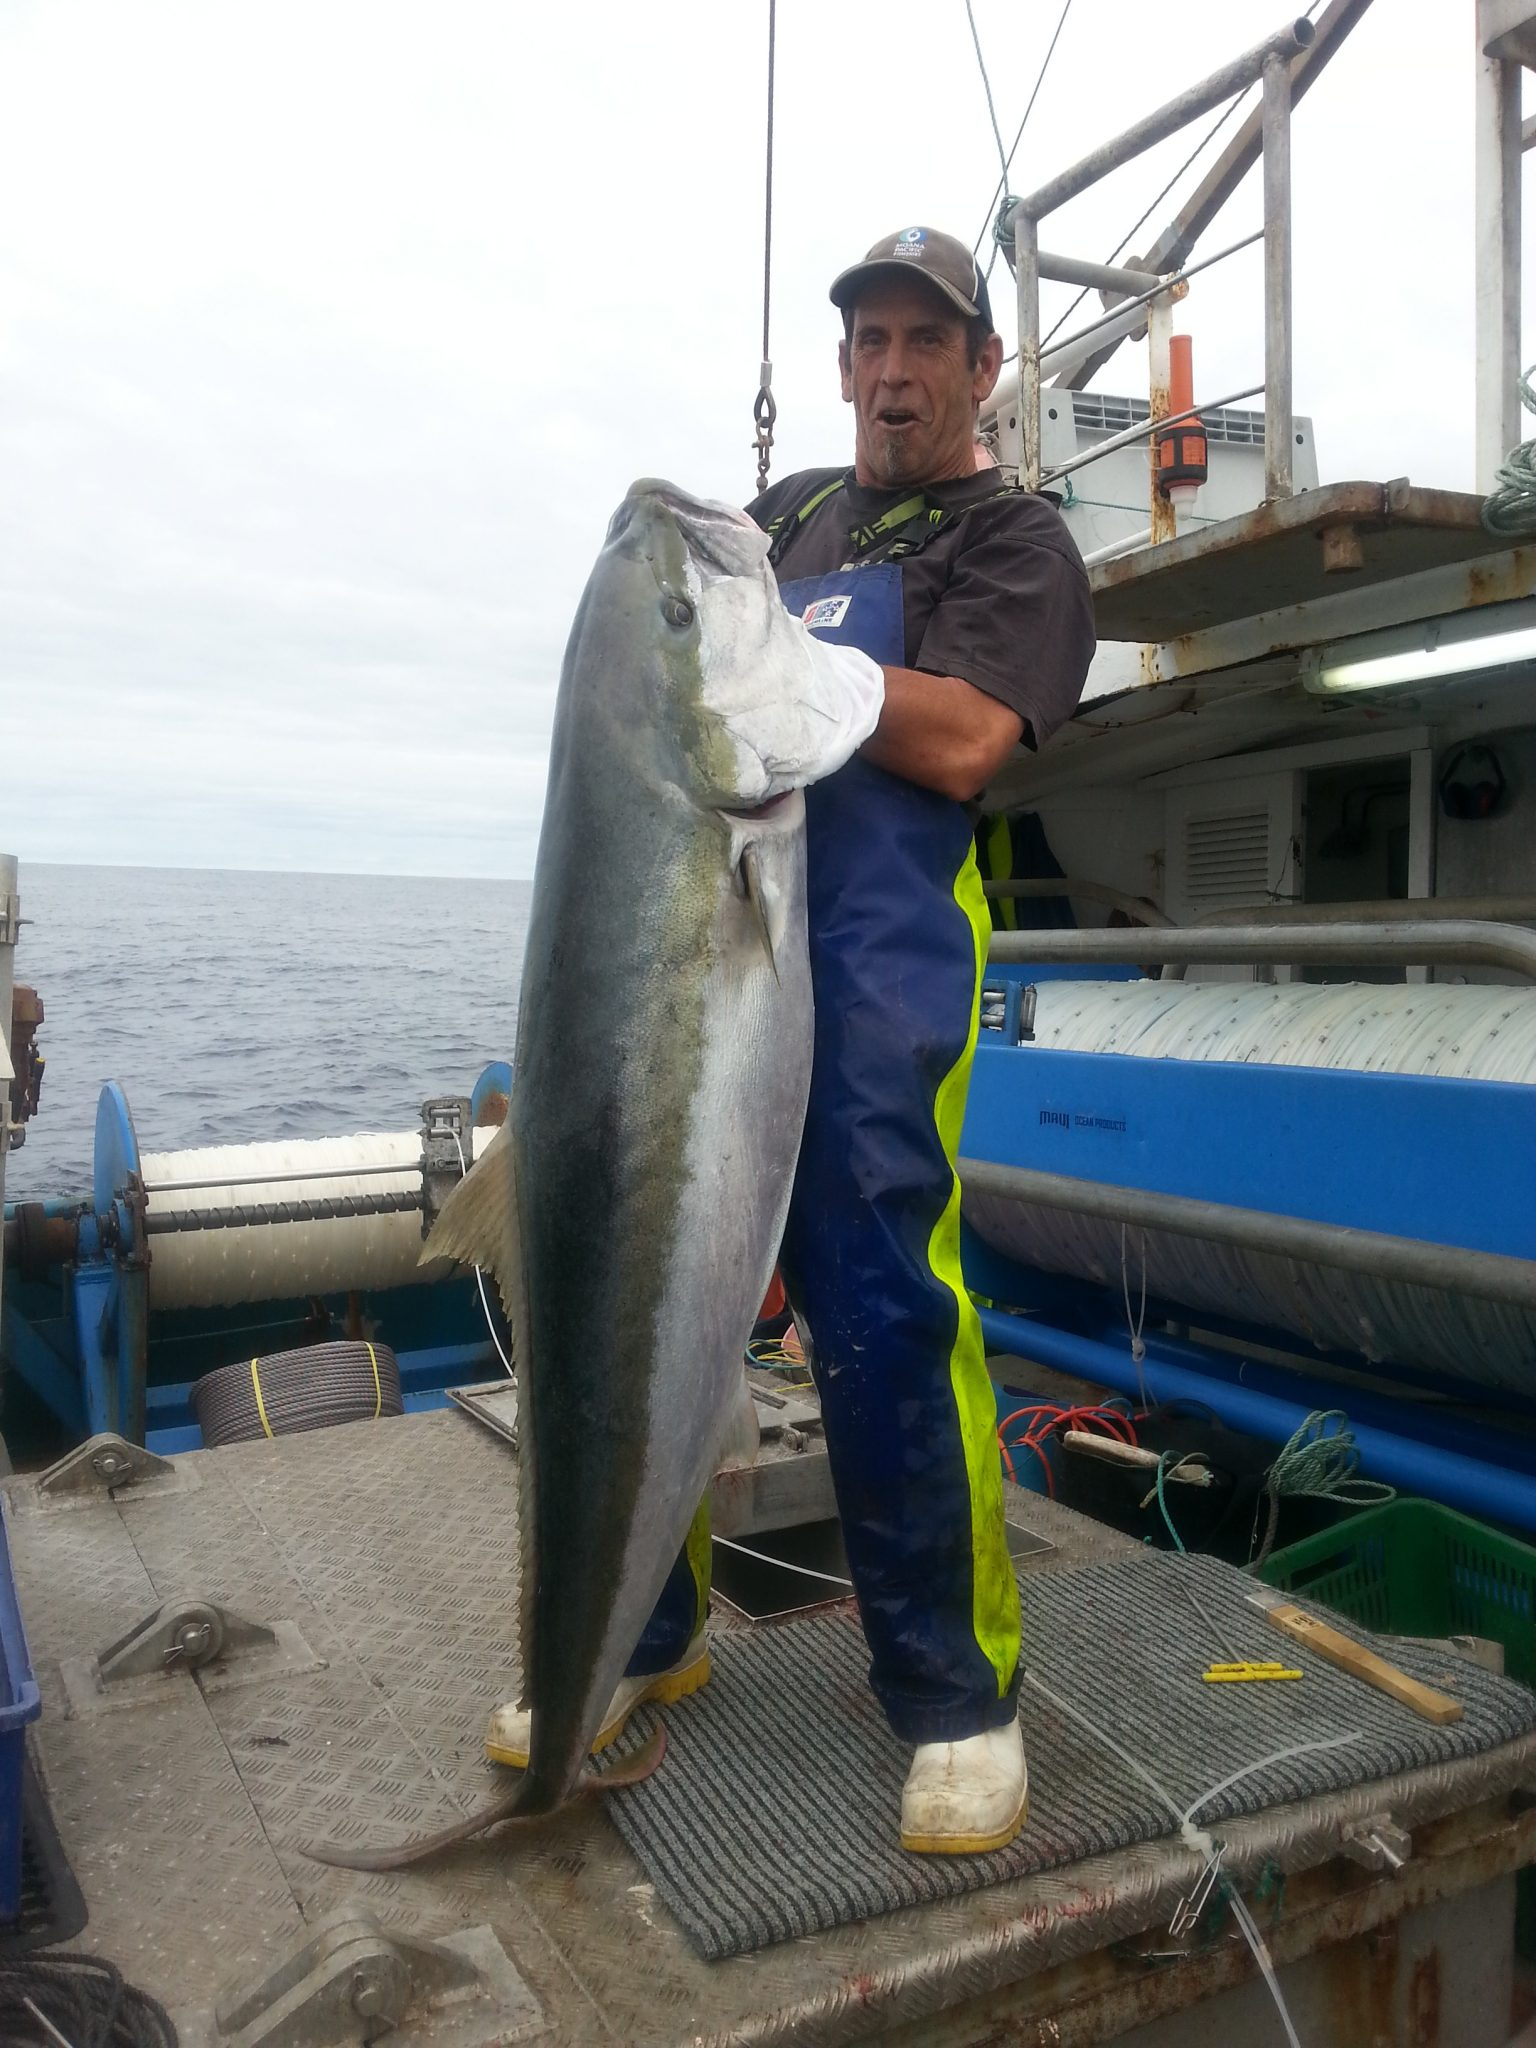 Tony Walker commercial fisherman, wearing Stormline wet weather gear